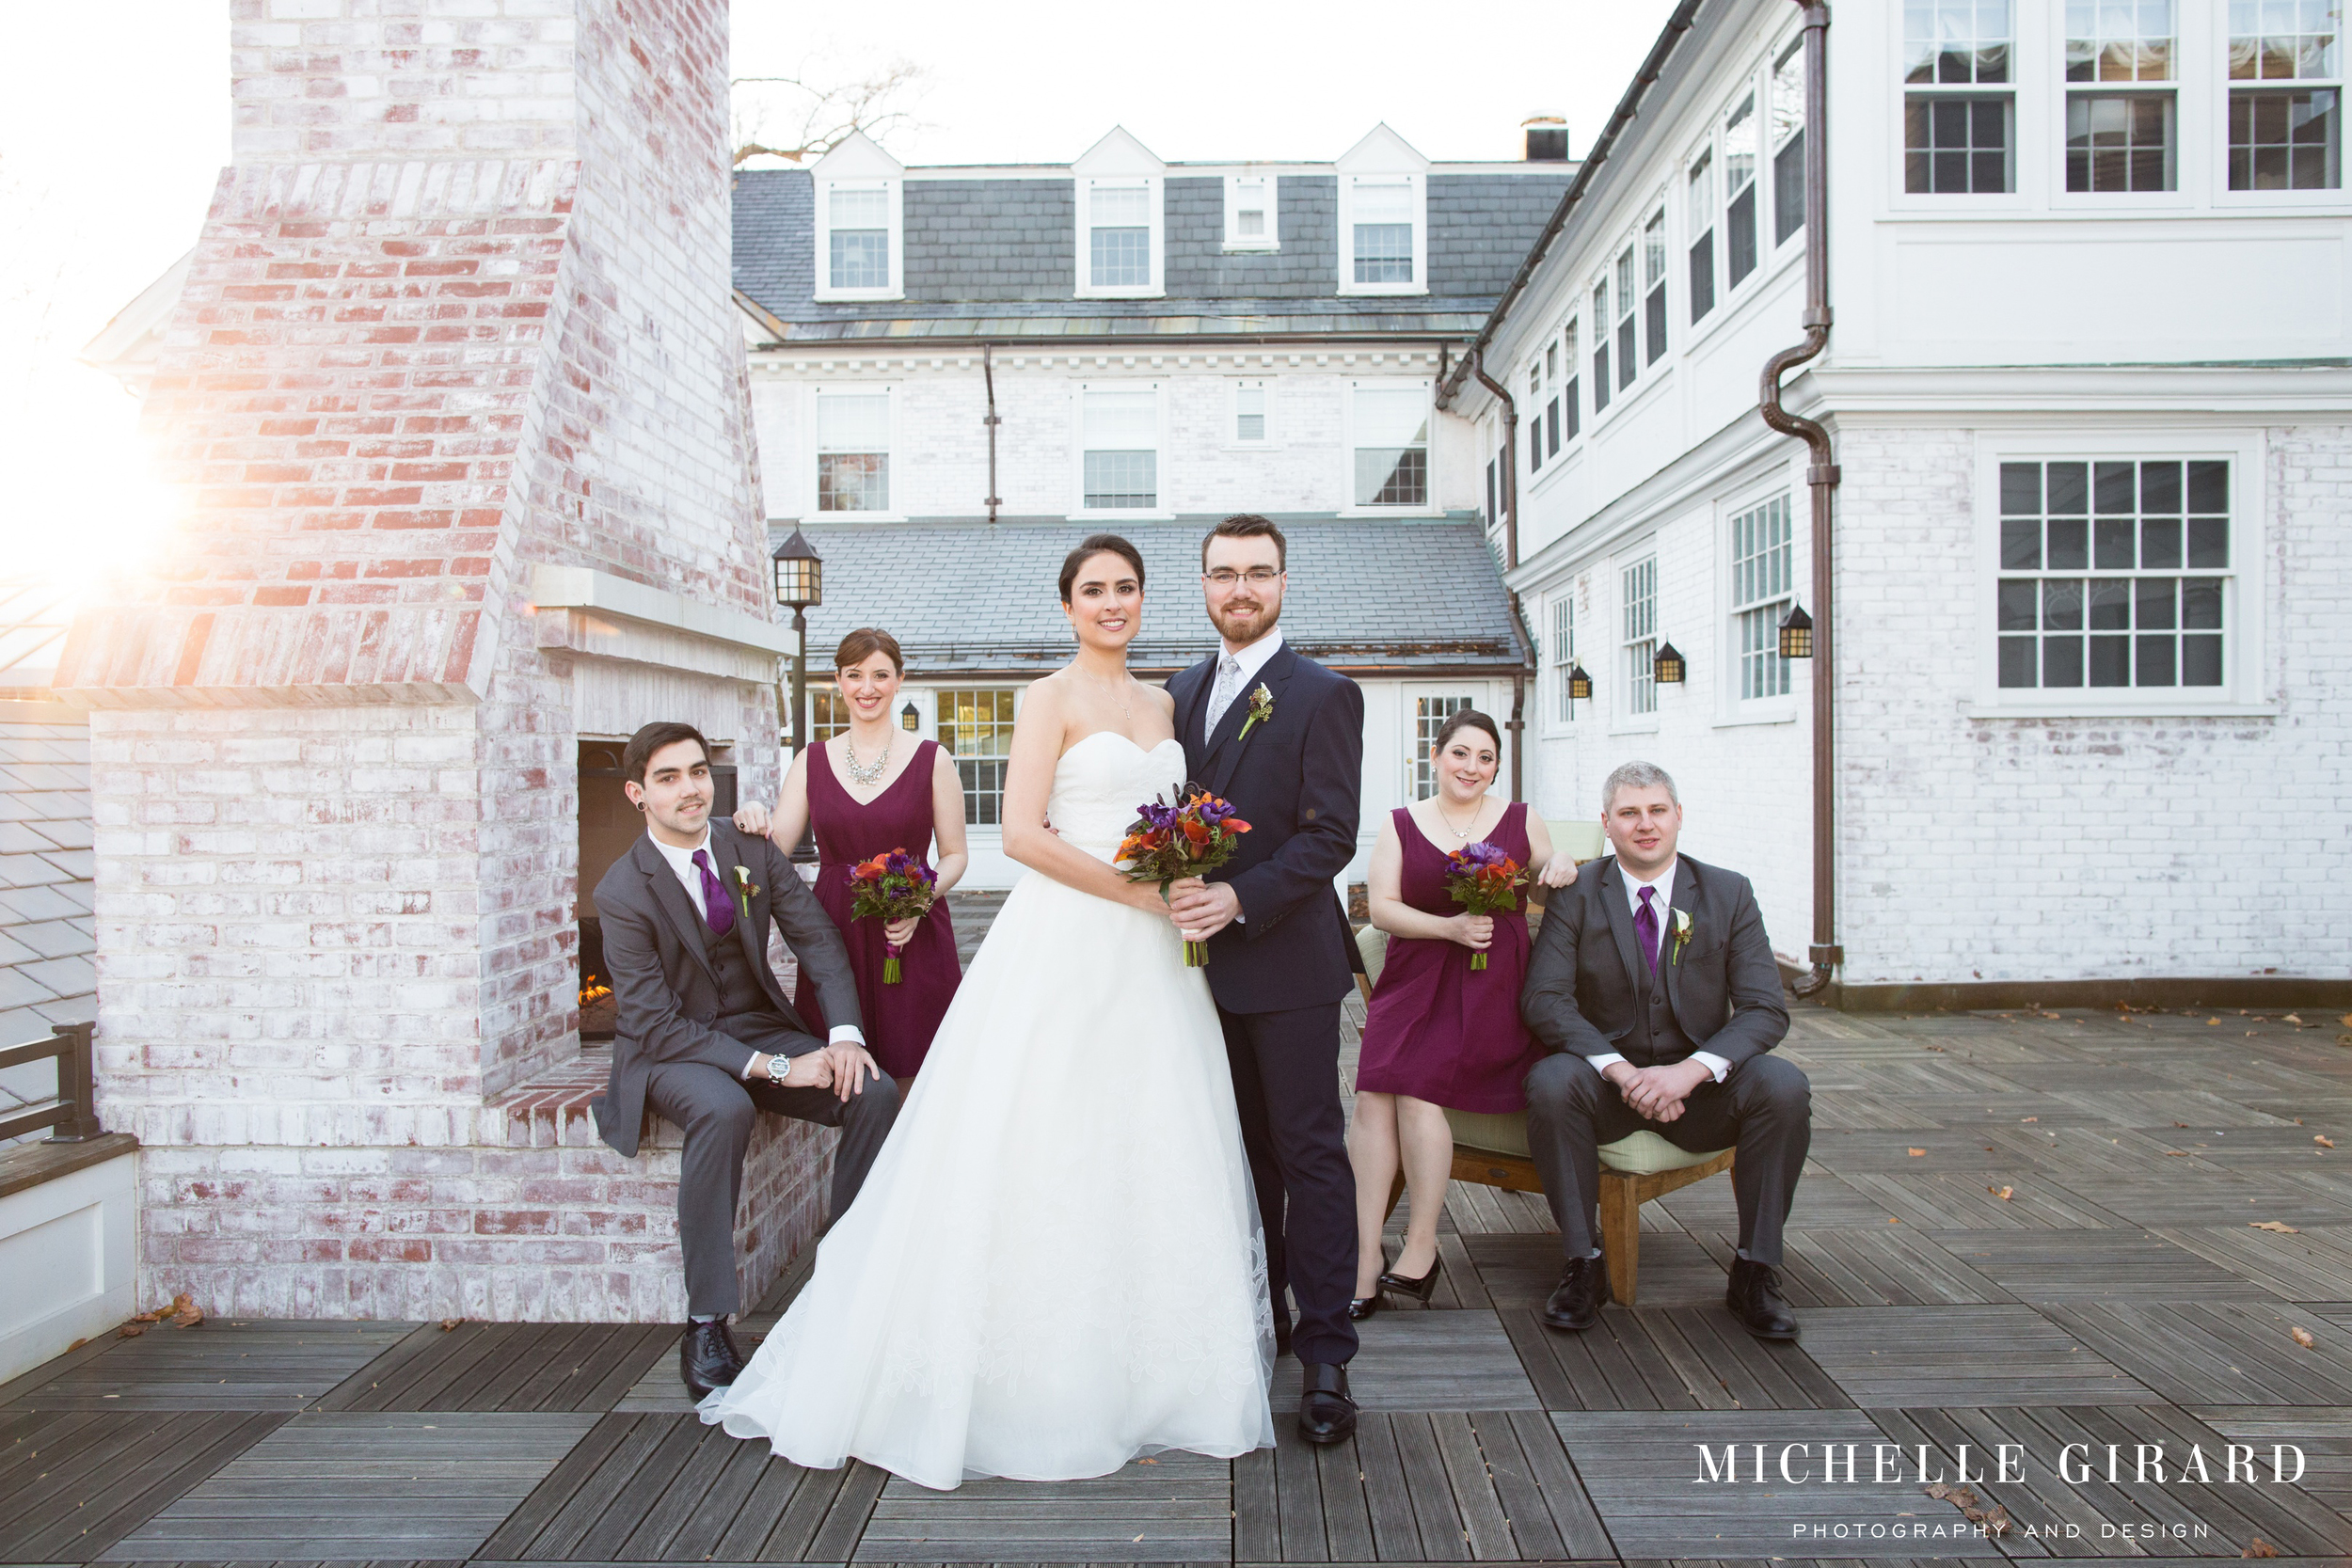 LordJefferyInnWedding_AmherstMa_MichelleGirardPhotography21.jpg